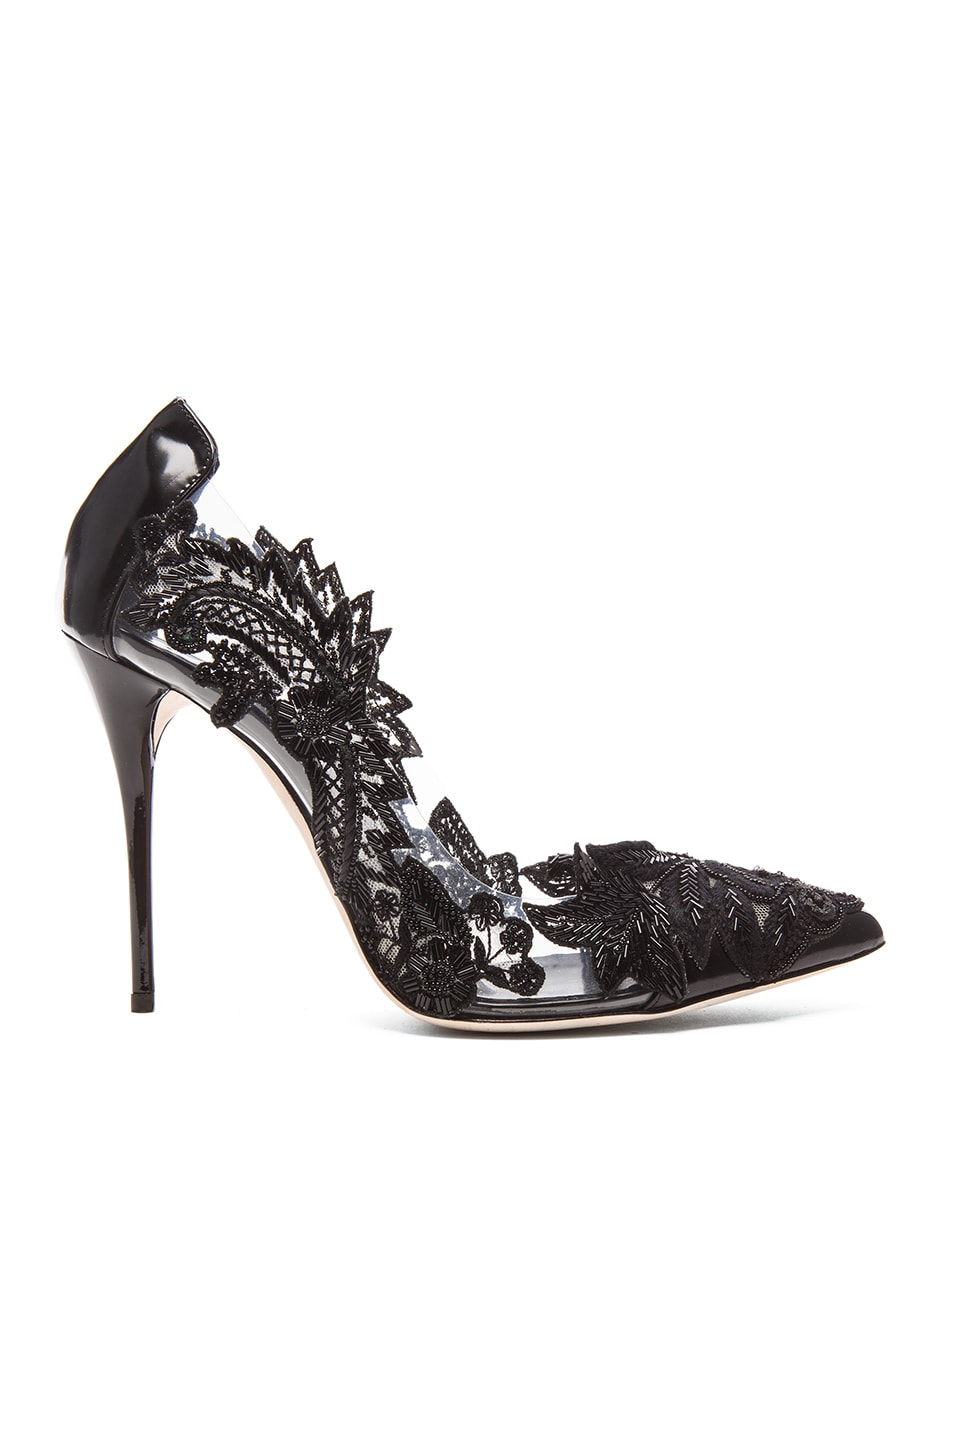 Image 1 of Oscar de la Renta Alyssa Patent Leather Heels